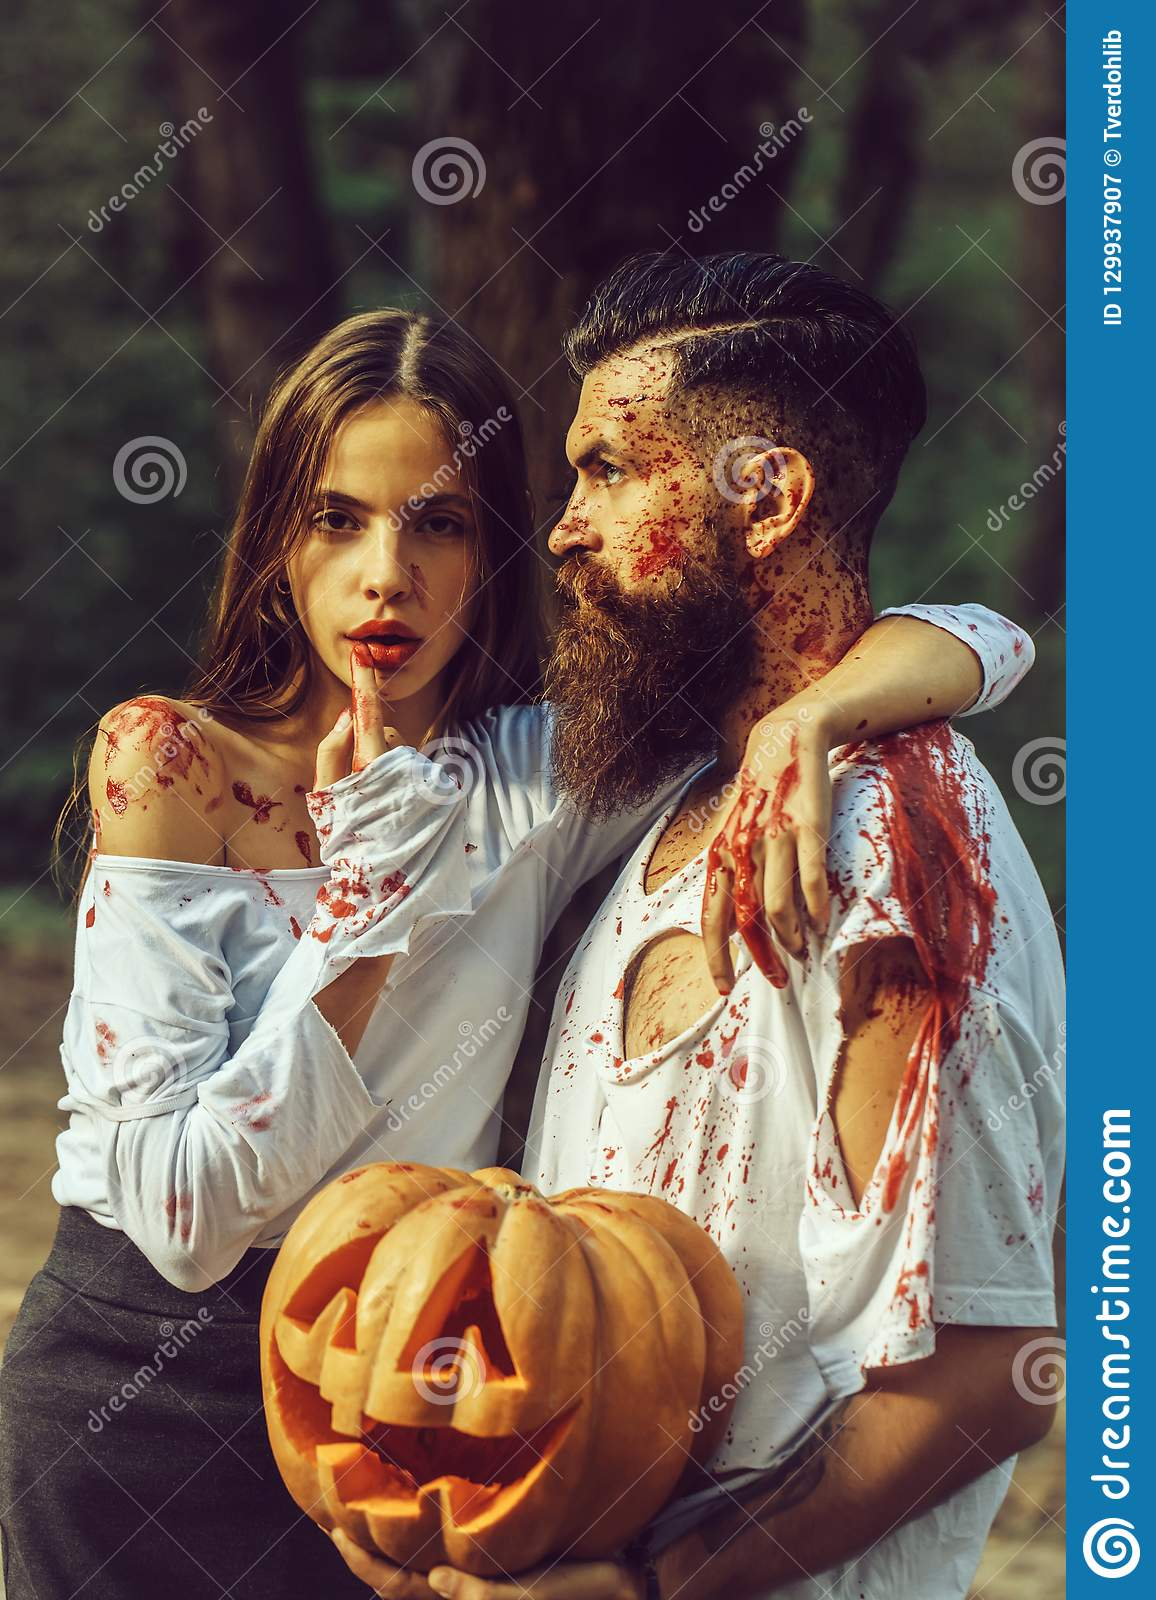 Scary Halloween Makeup For Guys With Beards.Halloween Couple With Pumpkin And Blood Stock Image Image